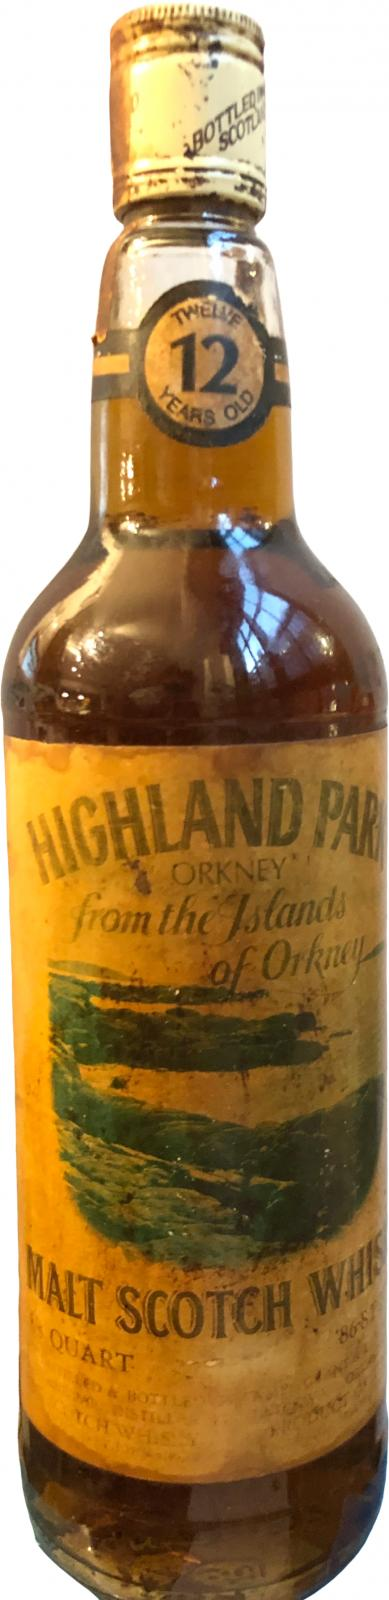 Highland Park From the islands of Orkney